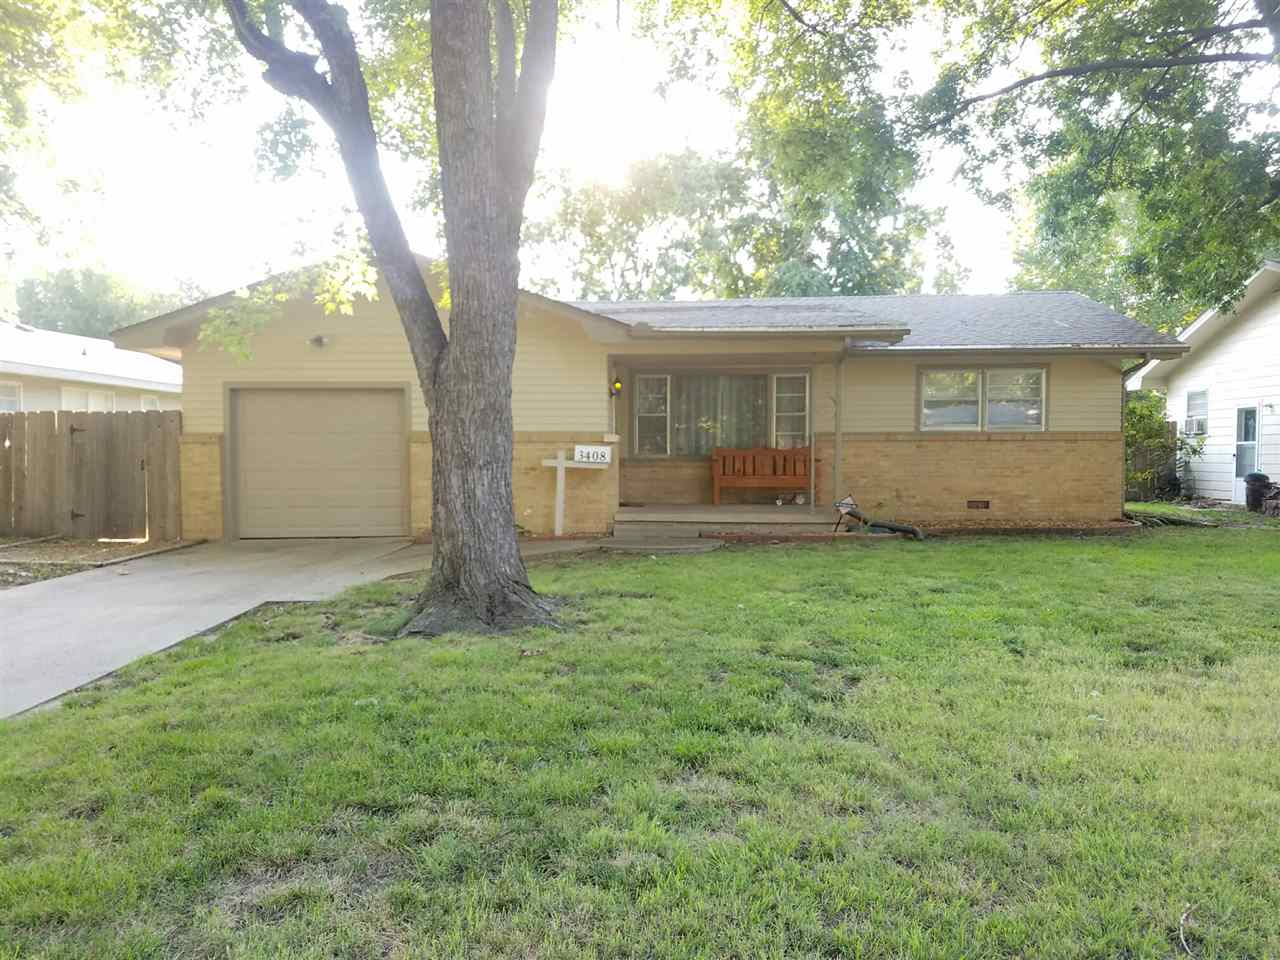 3408 S Bonn Ave, Wichita, KS 67217